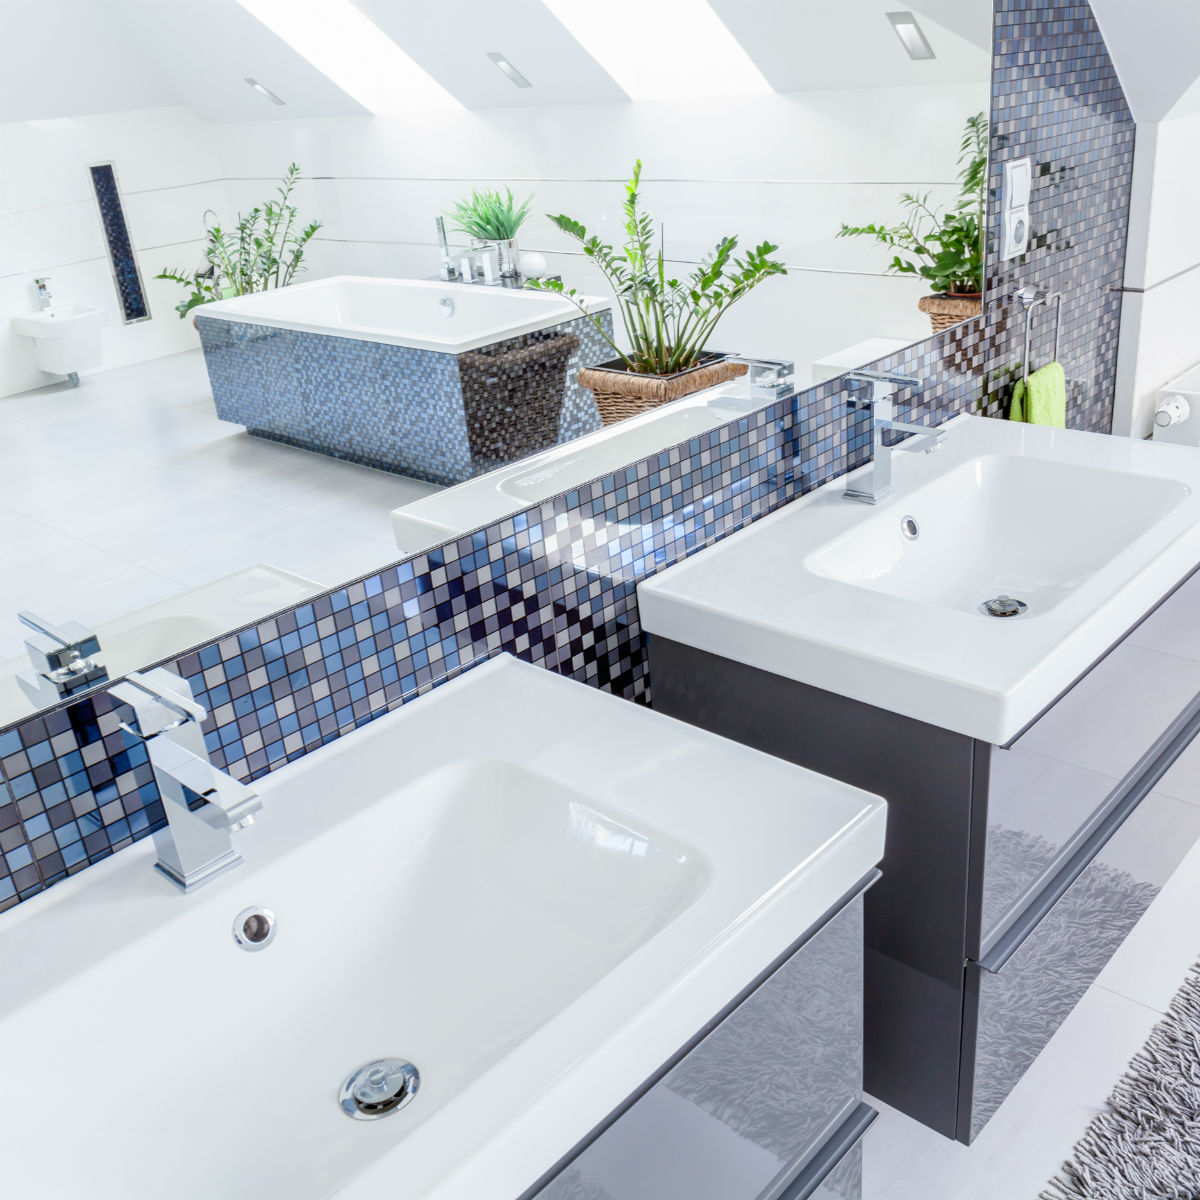 Inspiring Bathrooms For Your Next Remodel (9)